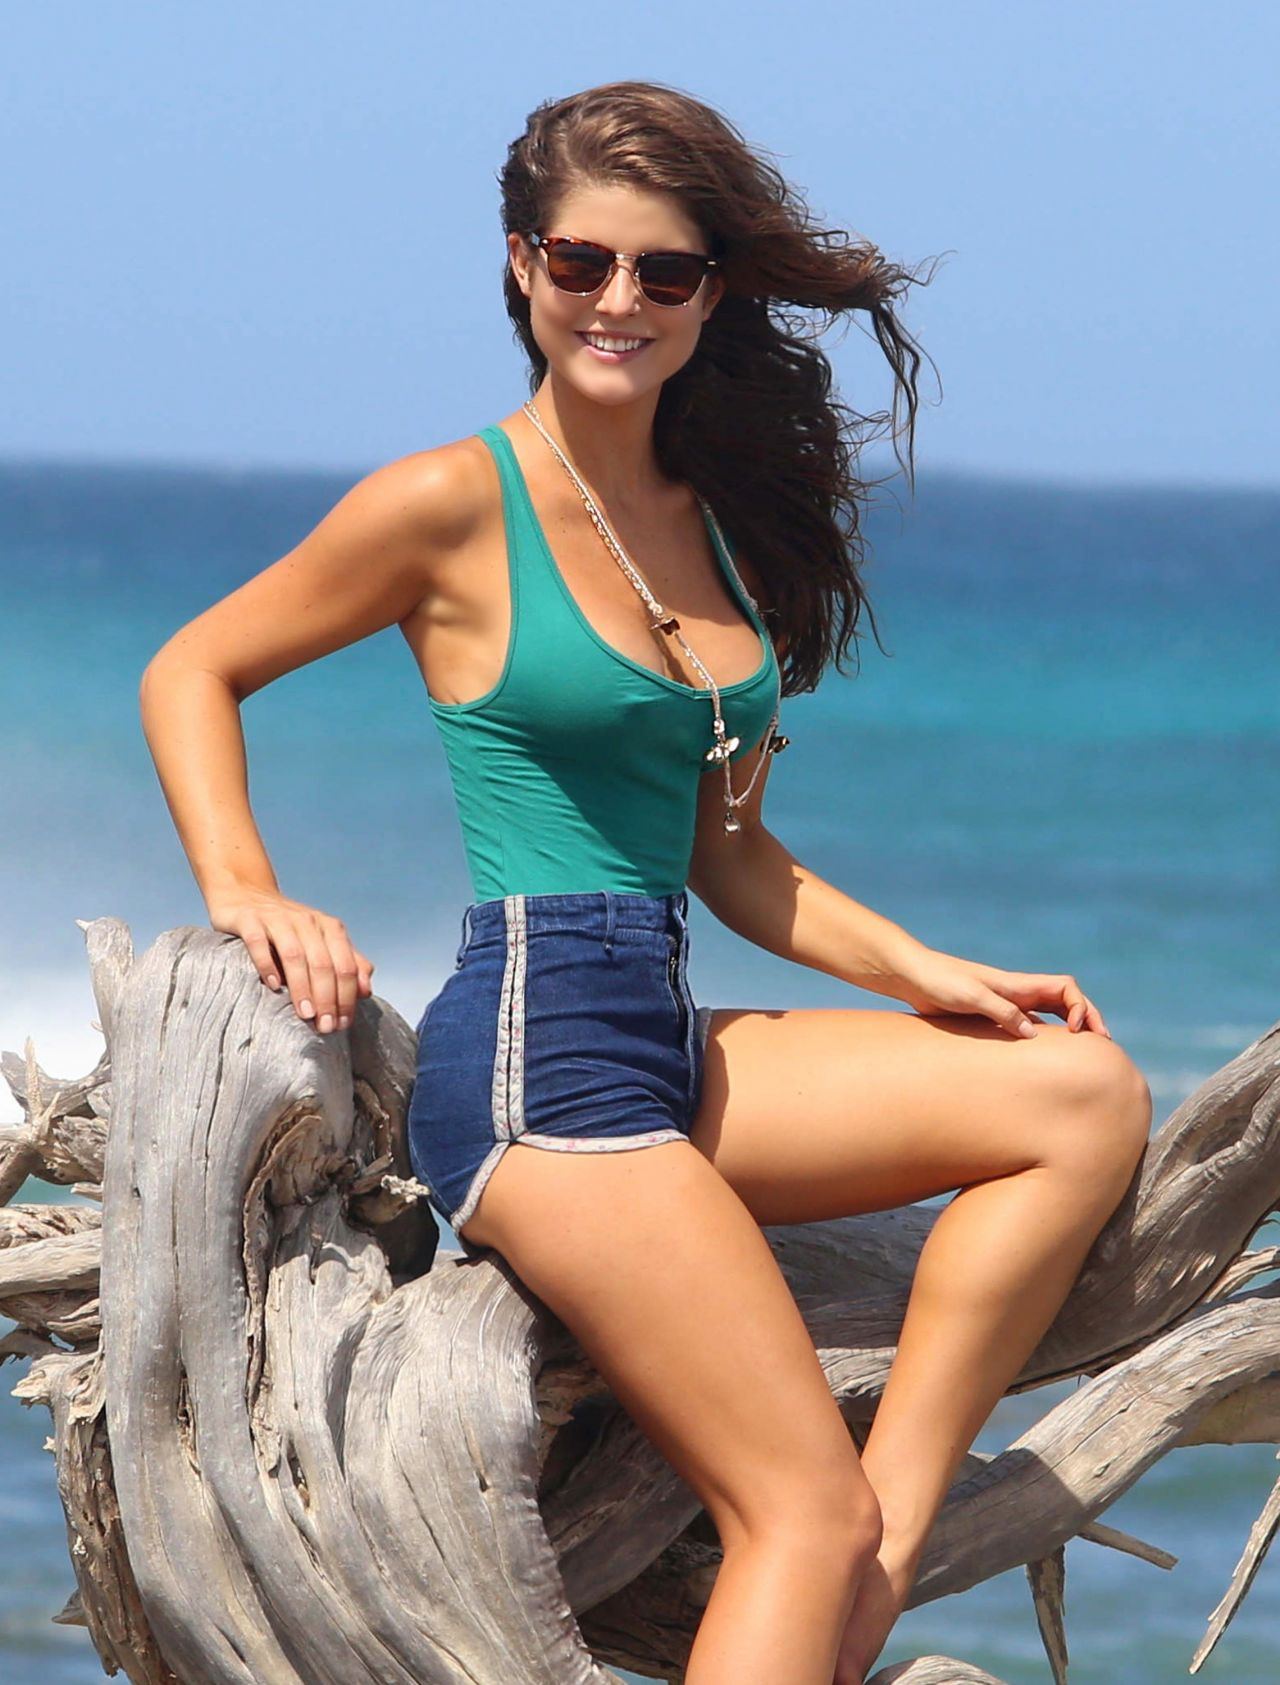 Amanda Cerny - Shooting a Music Video in Aruba - September 2014